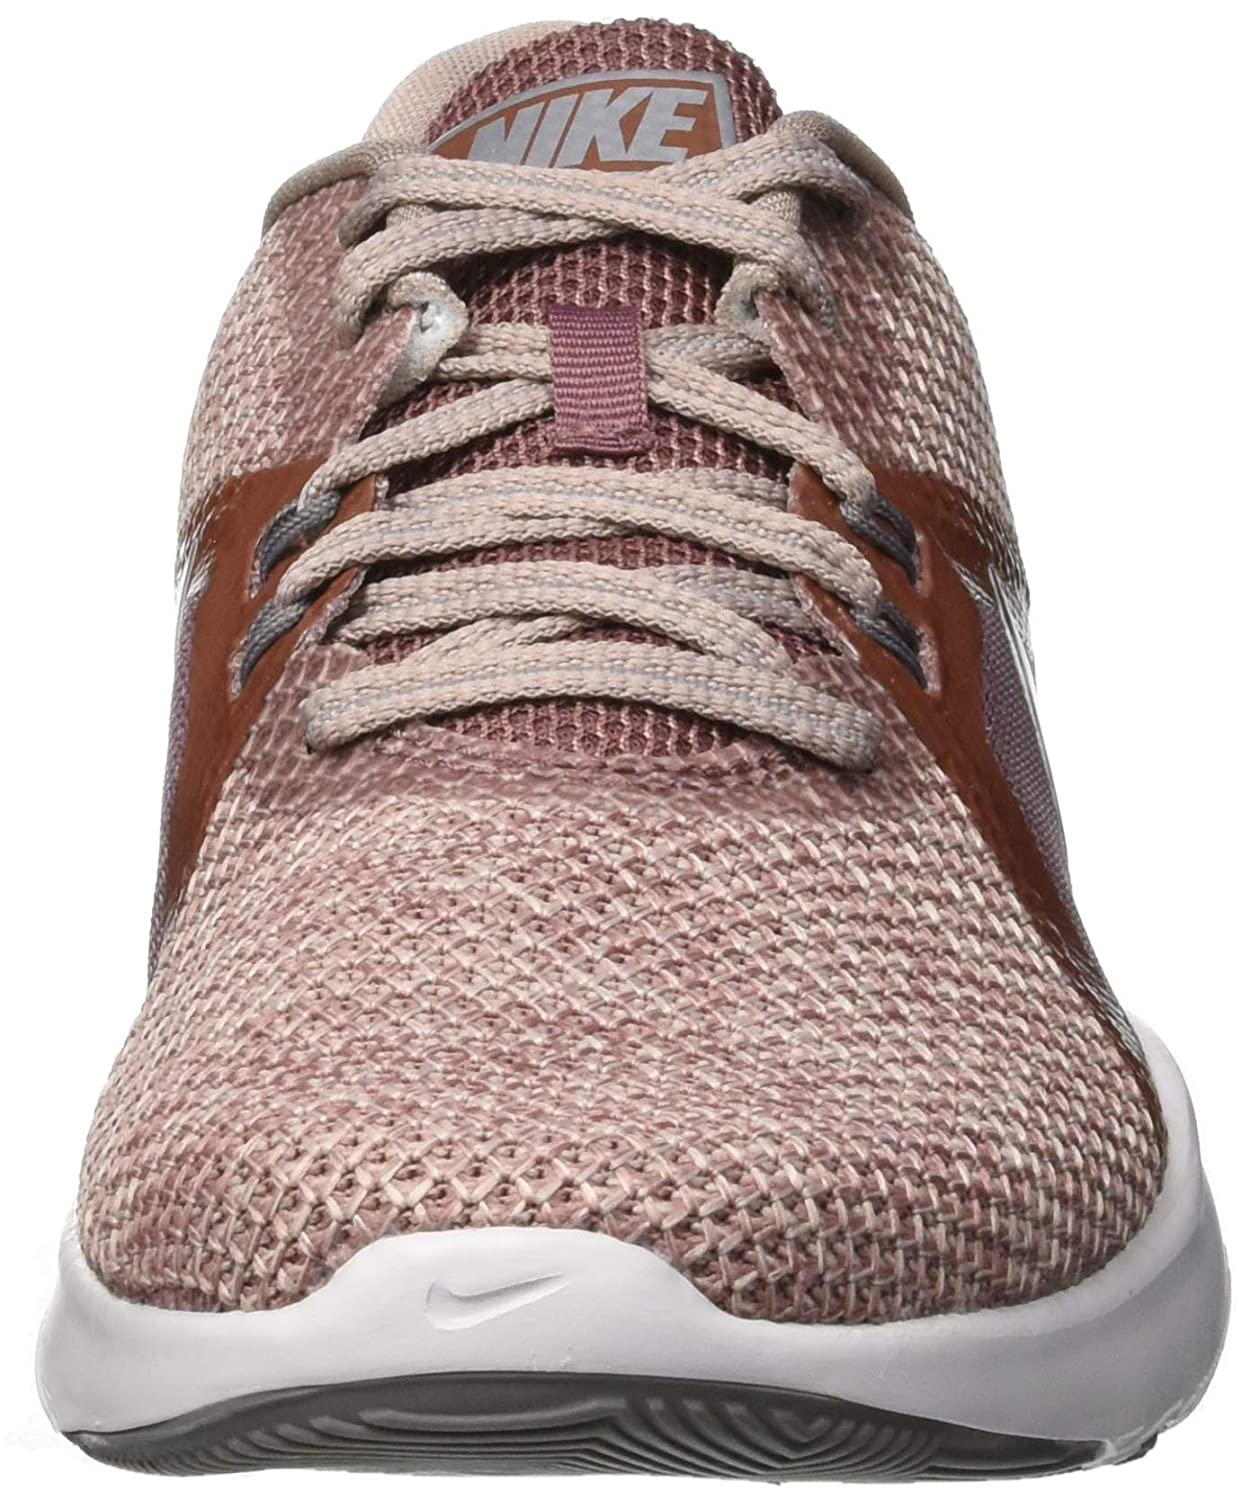 c6233dcaba5f Nike Women s Flex Trainer 8 PRM Running Shoes  Amazon.co.uk  Shoes   Bags